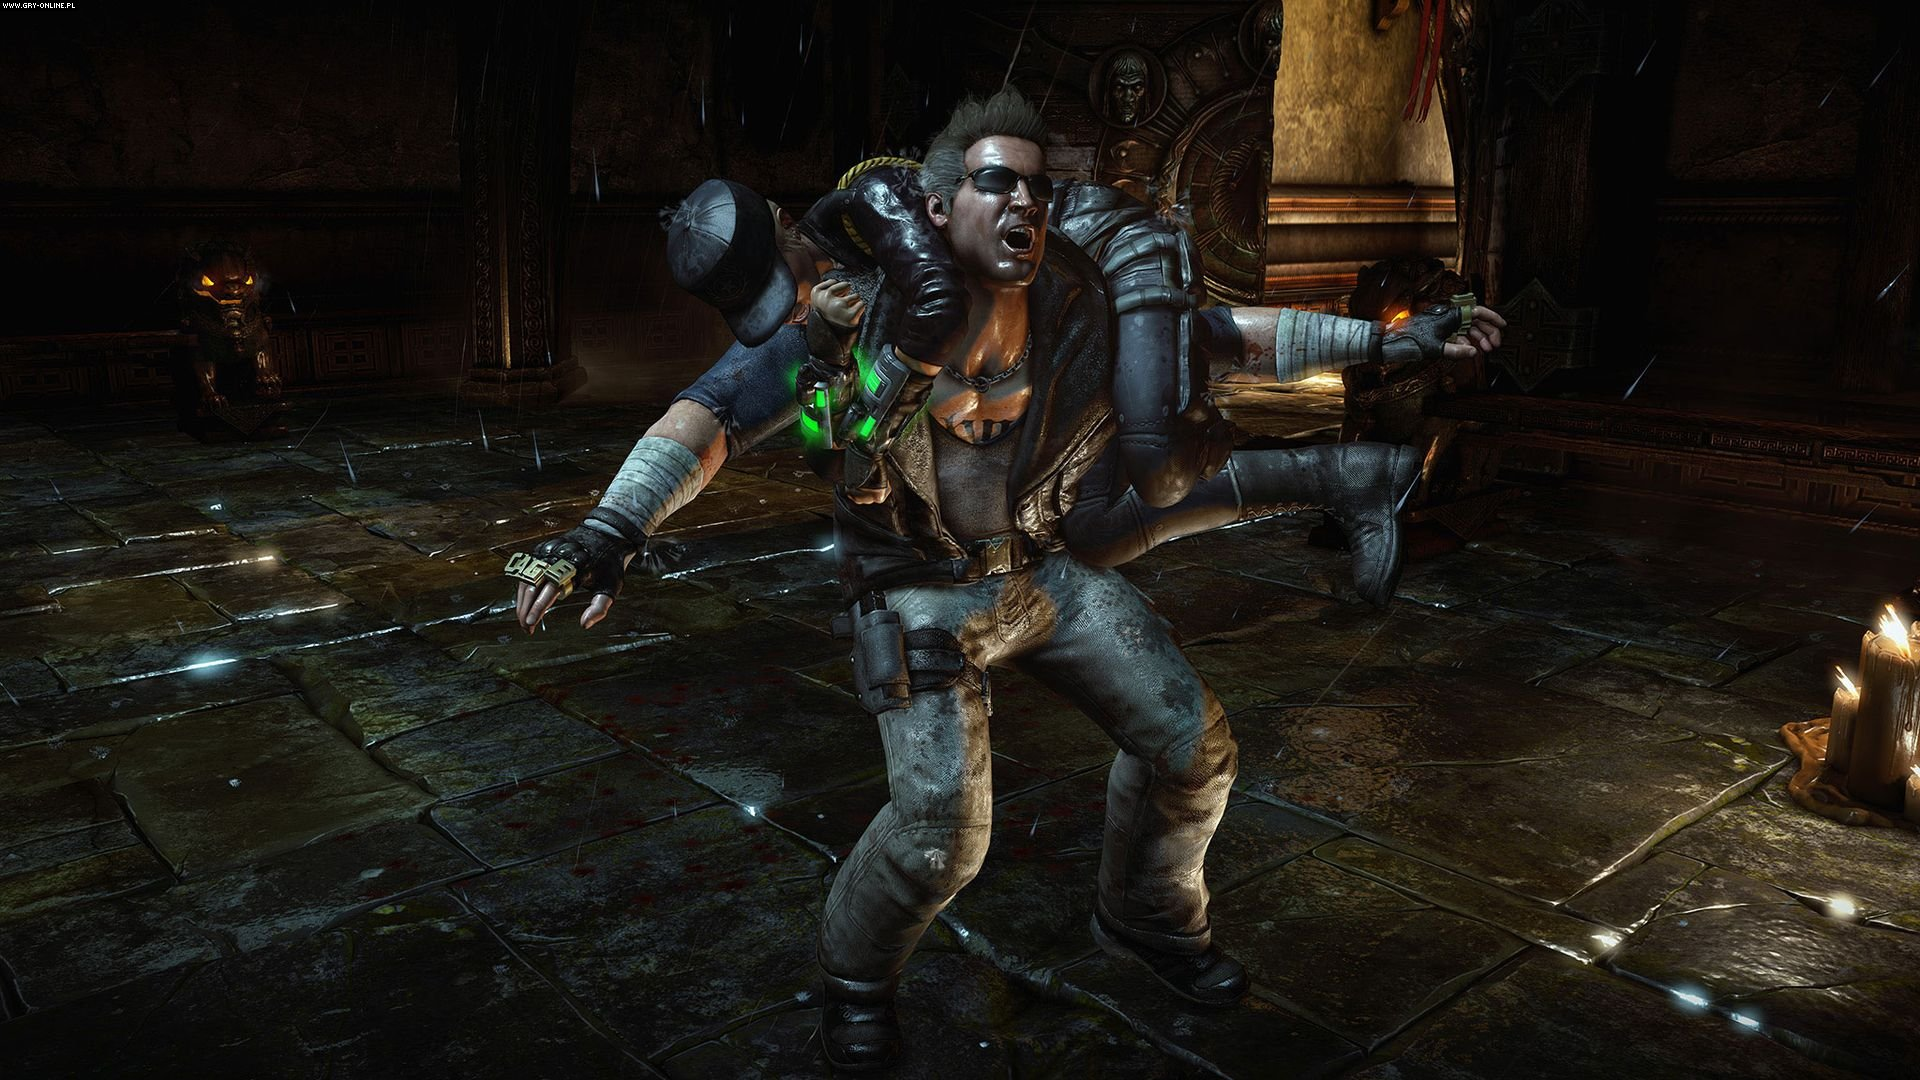 Mortal Kombat X PC, X360, PS3, PS4, XONE Games Image 9/28, NetherRealm Studios , Warner Bros Interactive Entertainment